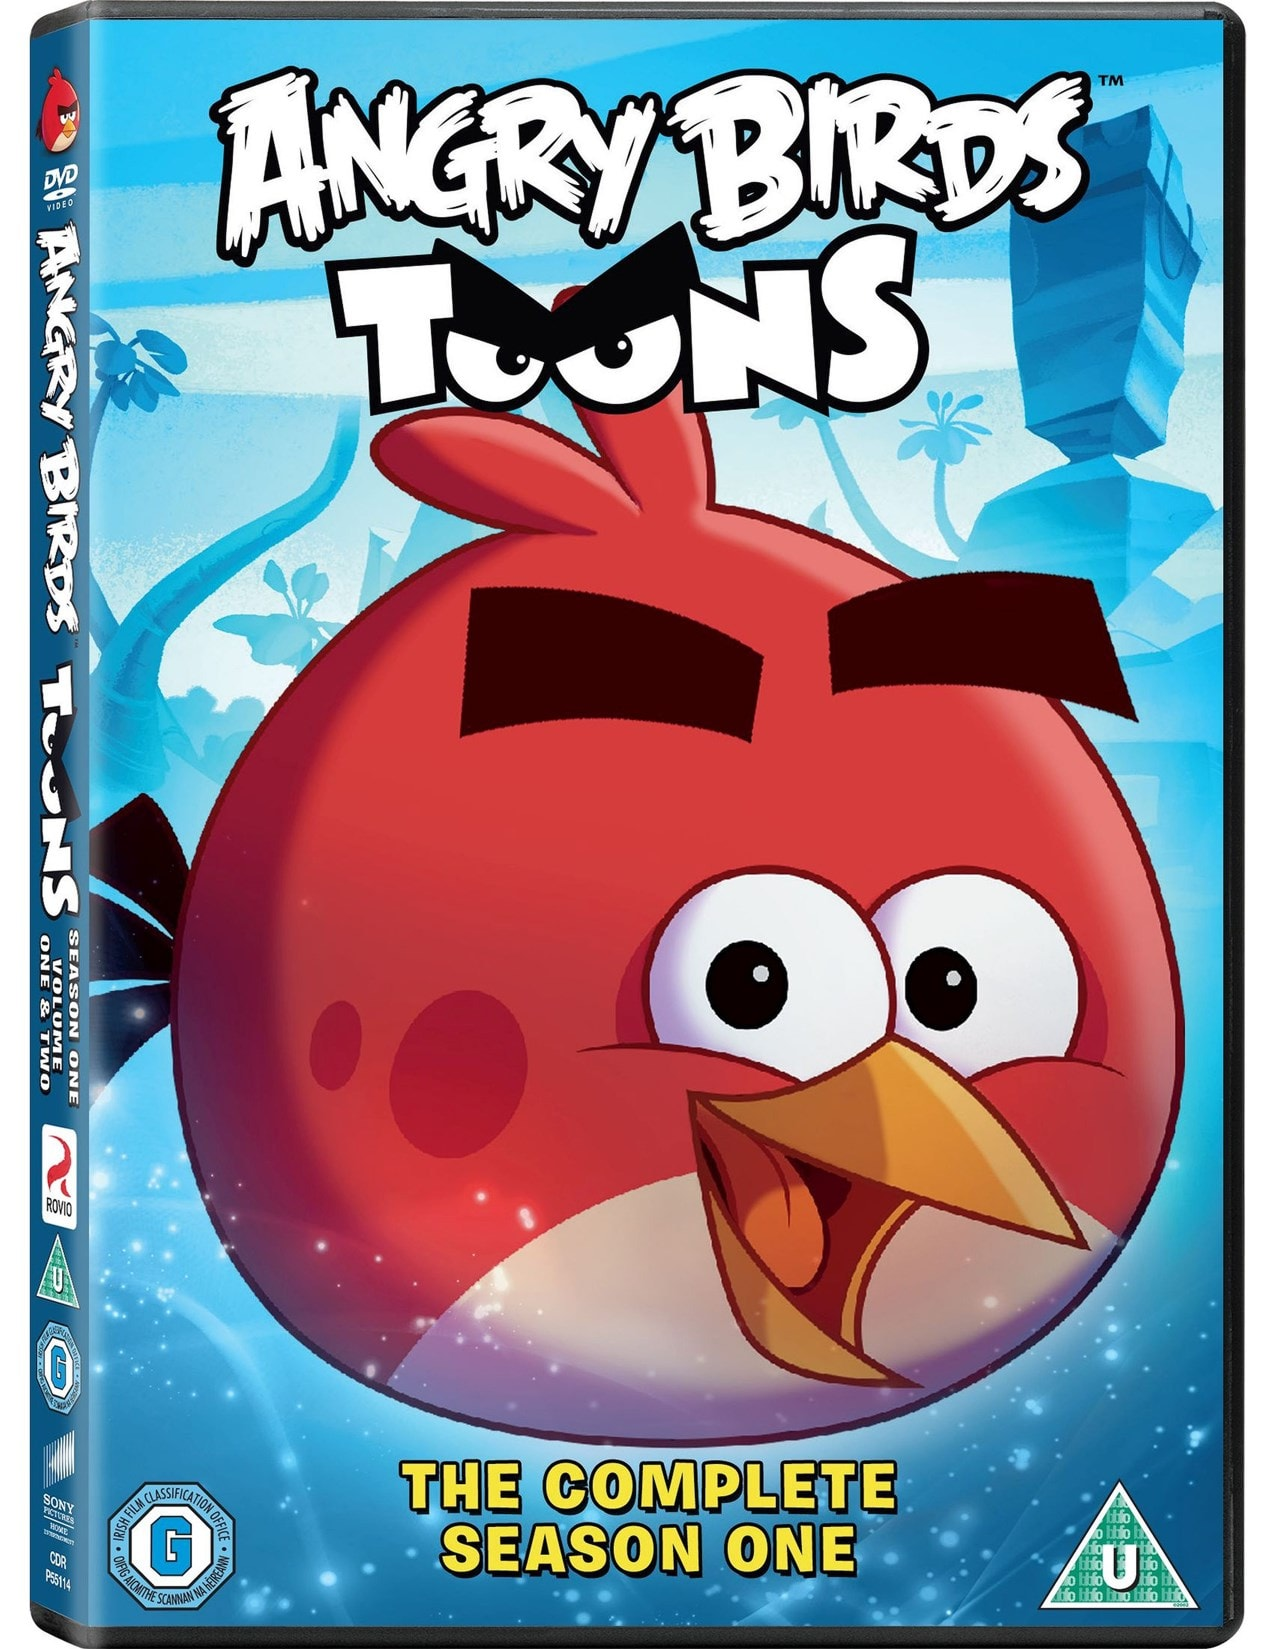 Angry Birds Toons: The Complete Season 1 - 1